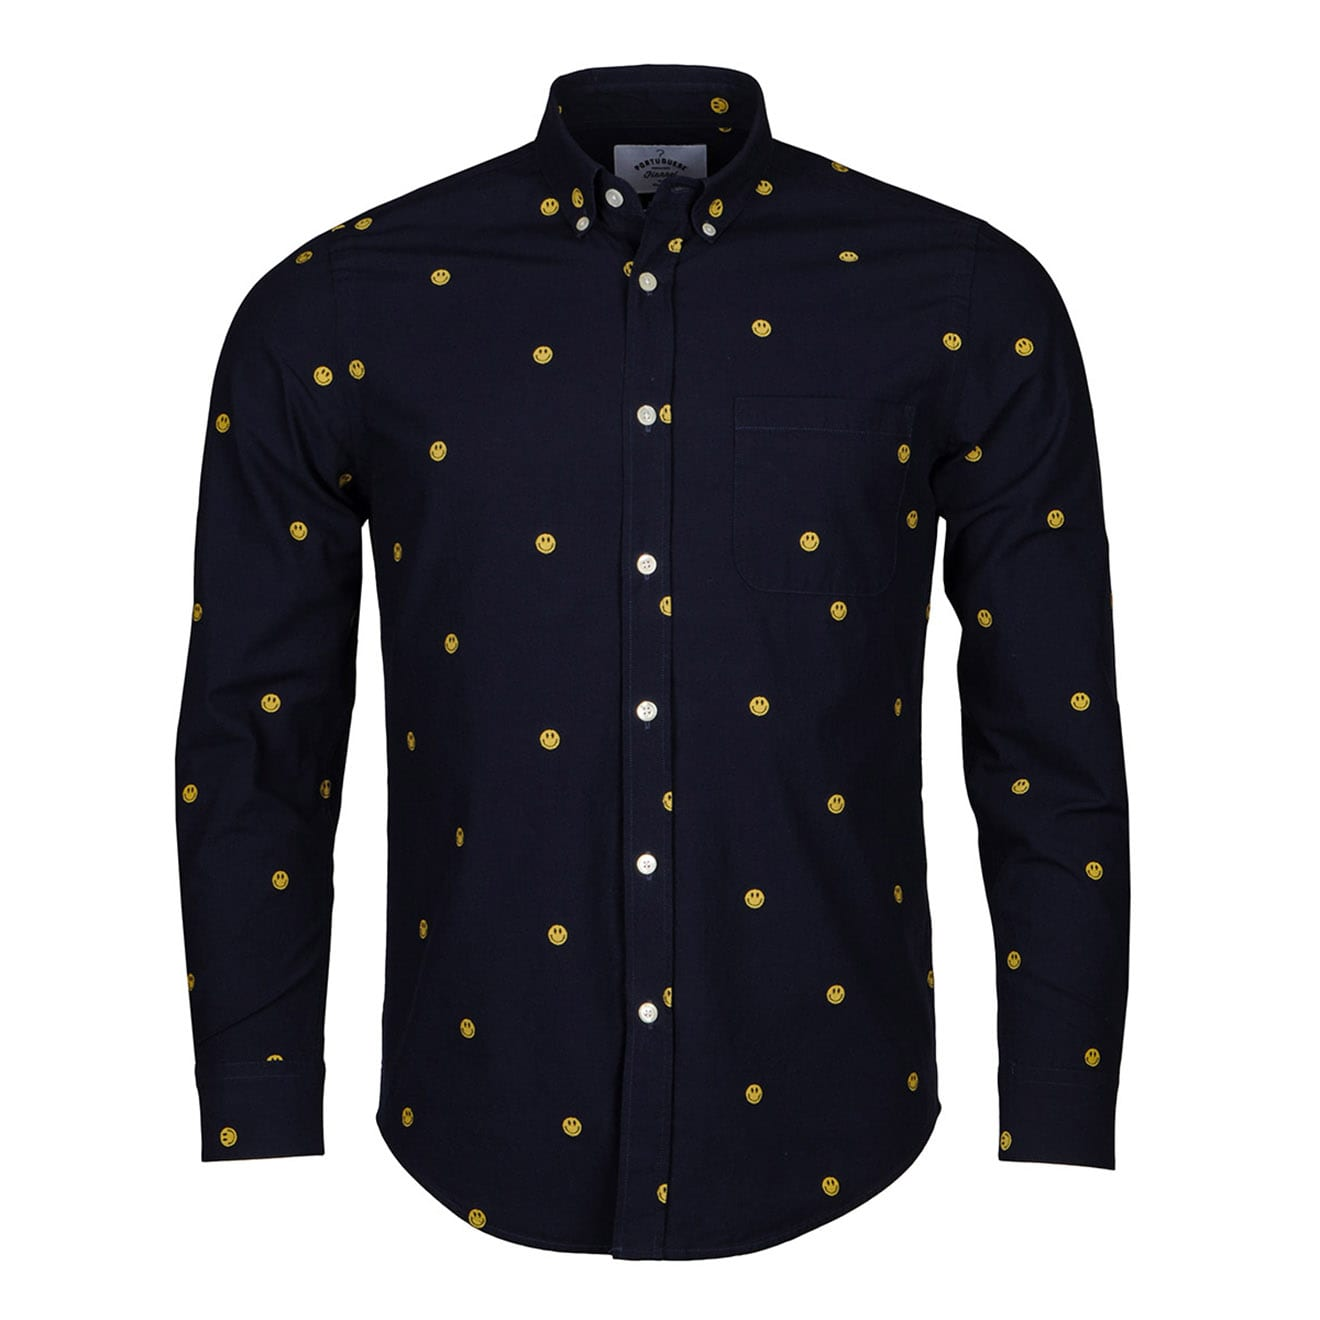 Portuguese Flannel Smiley Face Shirt Navy